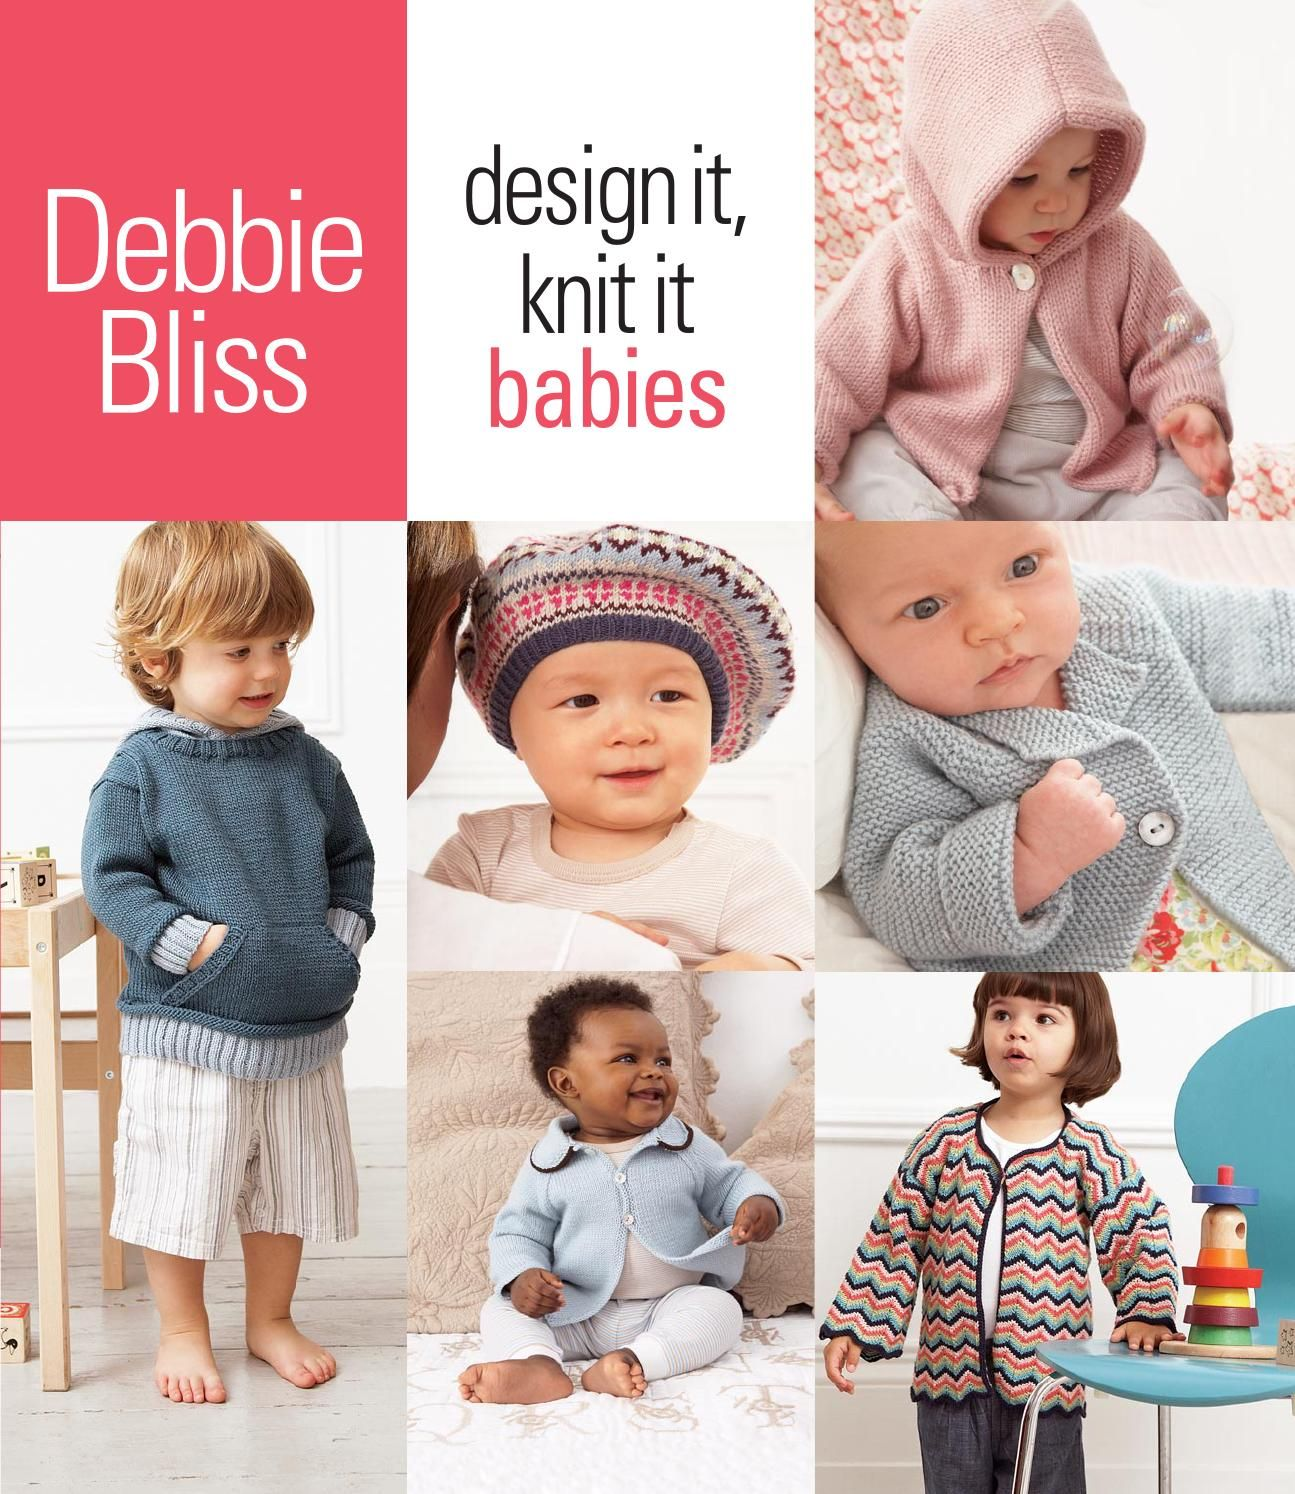 Debbie Bliss Design It Knit It Babies | Babies, Knitting patterns ...